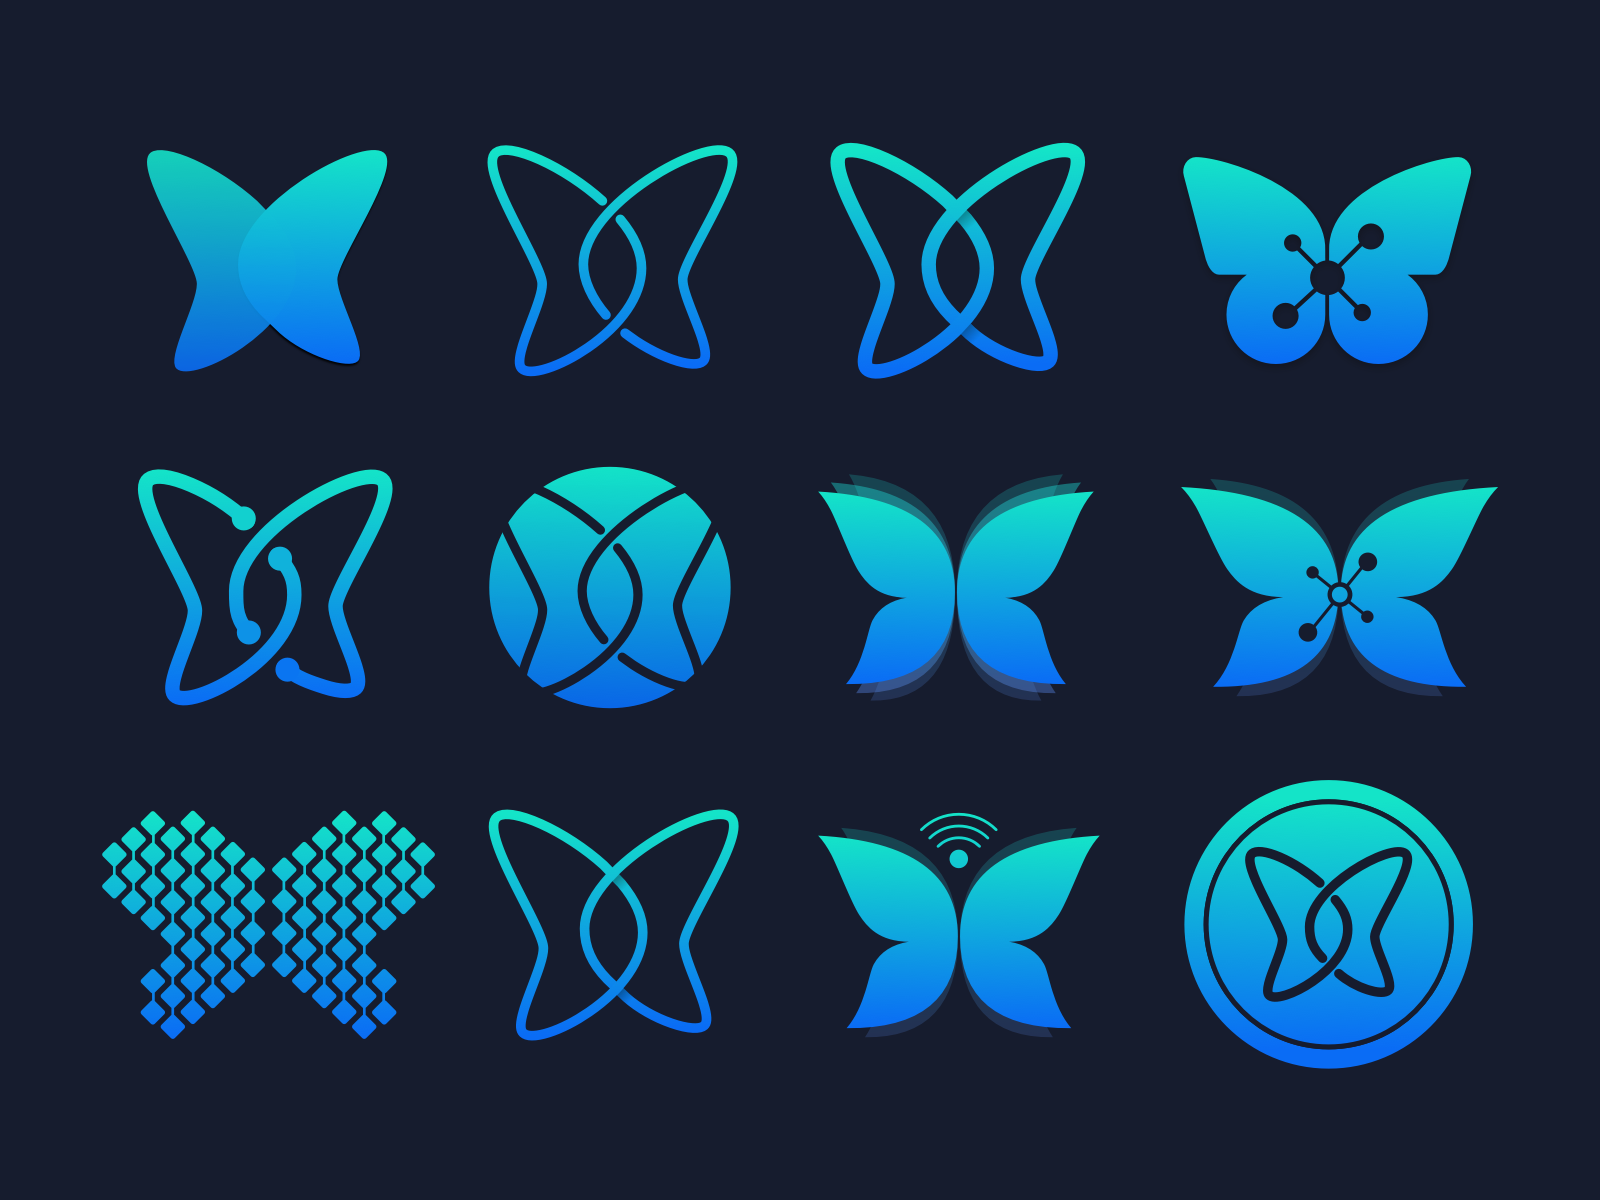 Buttrfly Concepts identity illustration mark icons icon emblem butterfly gradient branding brand logos logo sketch